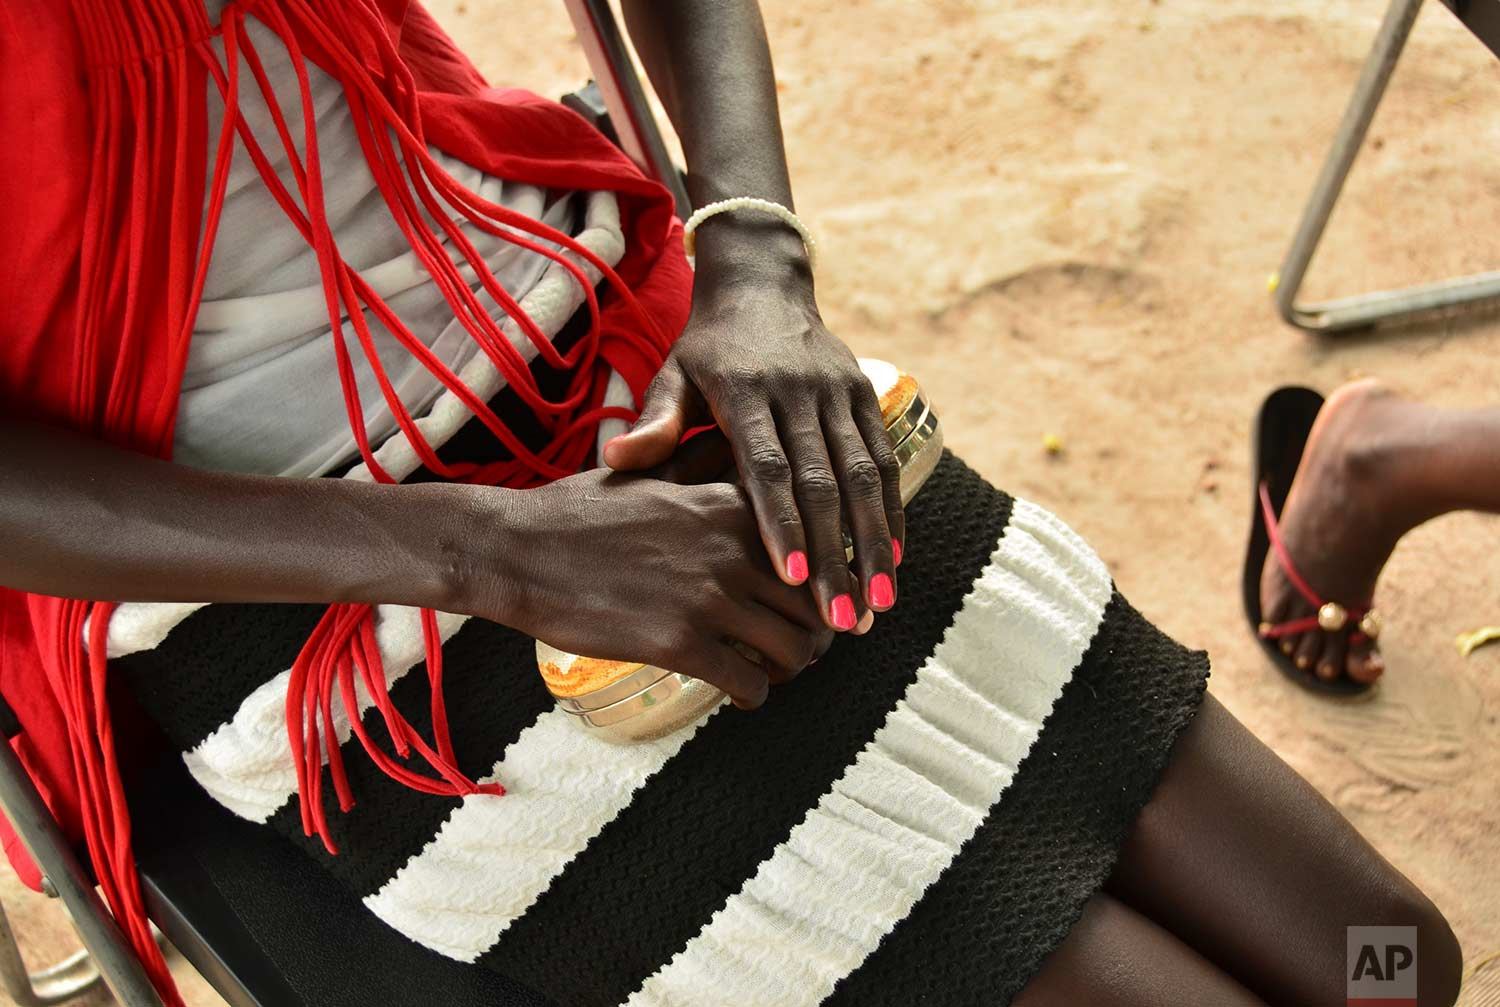 In this photo taken Sunday, July 30, 2017, Eliza, 17, who at age 13 was forced by her father to marry a 35-year-old man from their village in exchange for 50 cattle, recounts her experience to The Associated Press in the town of Rumbek, South Sudan. (AP Photo/Mariah Quesada)